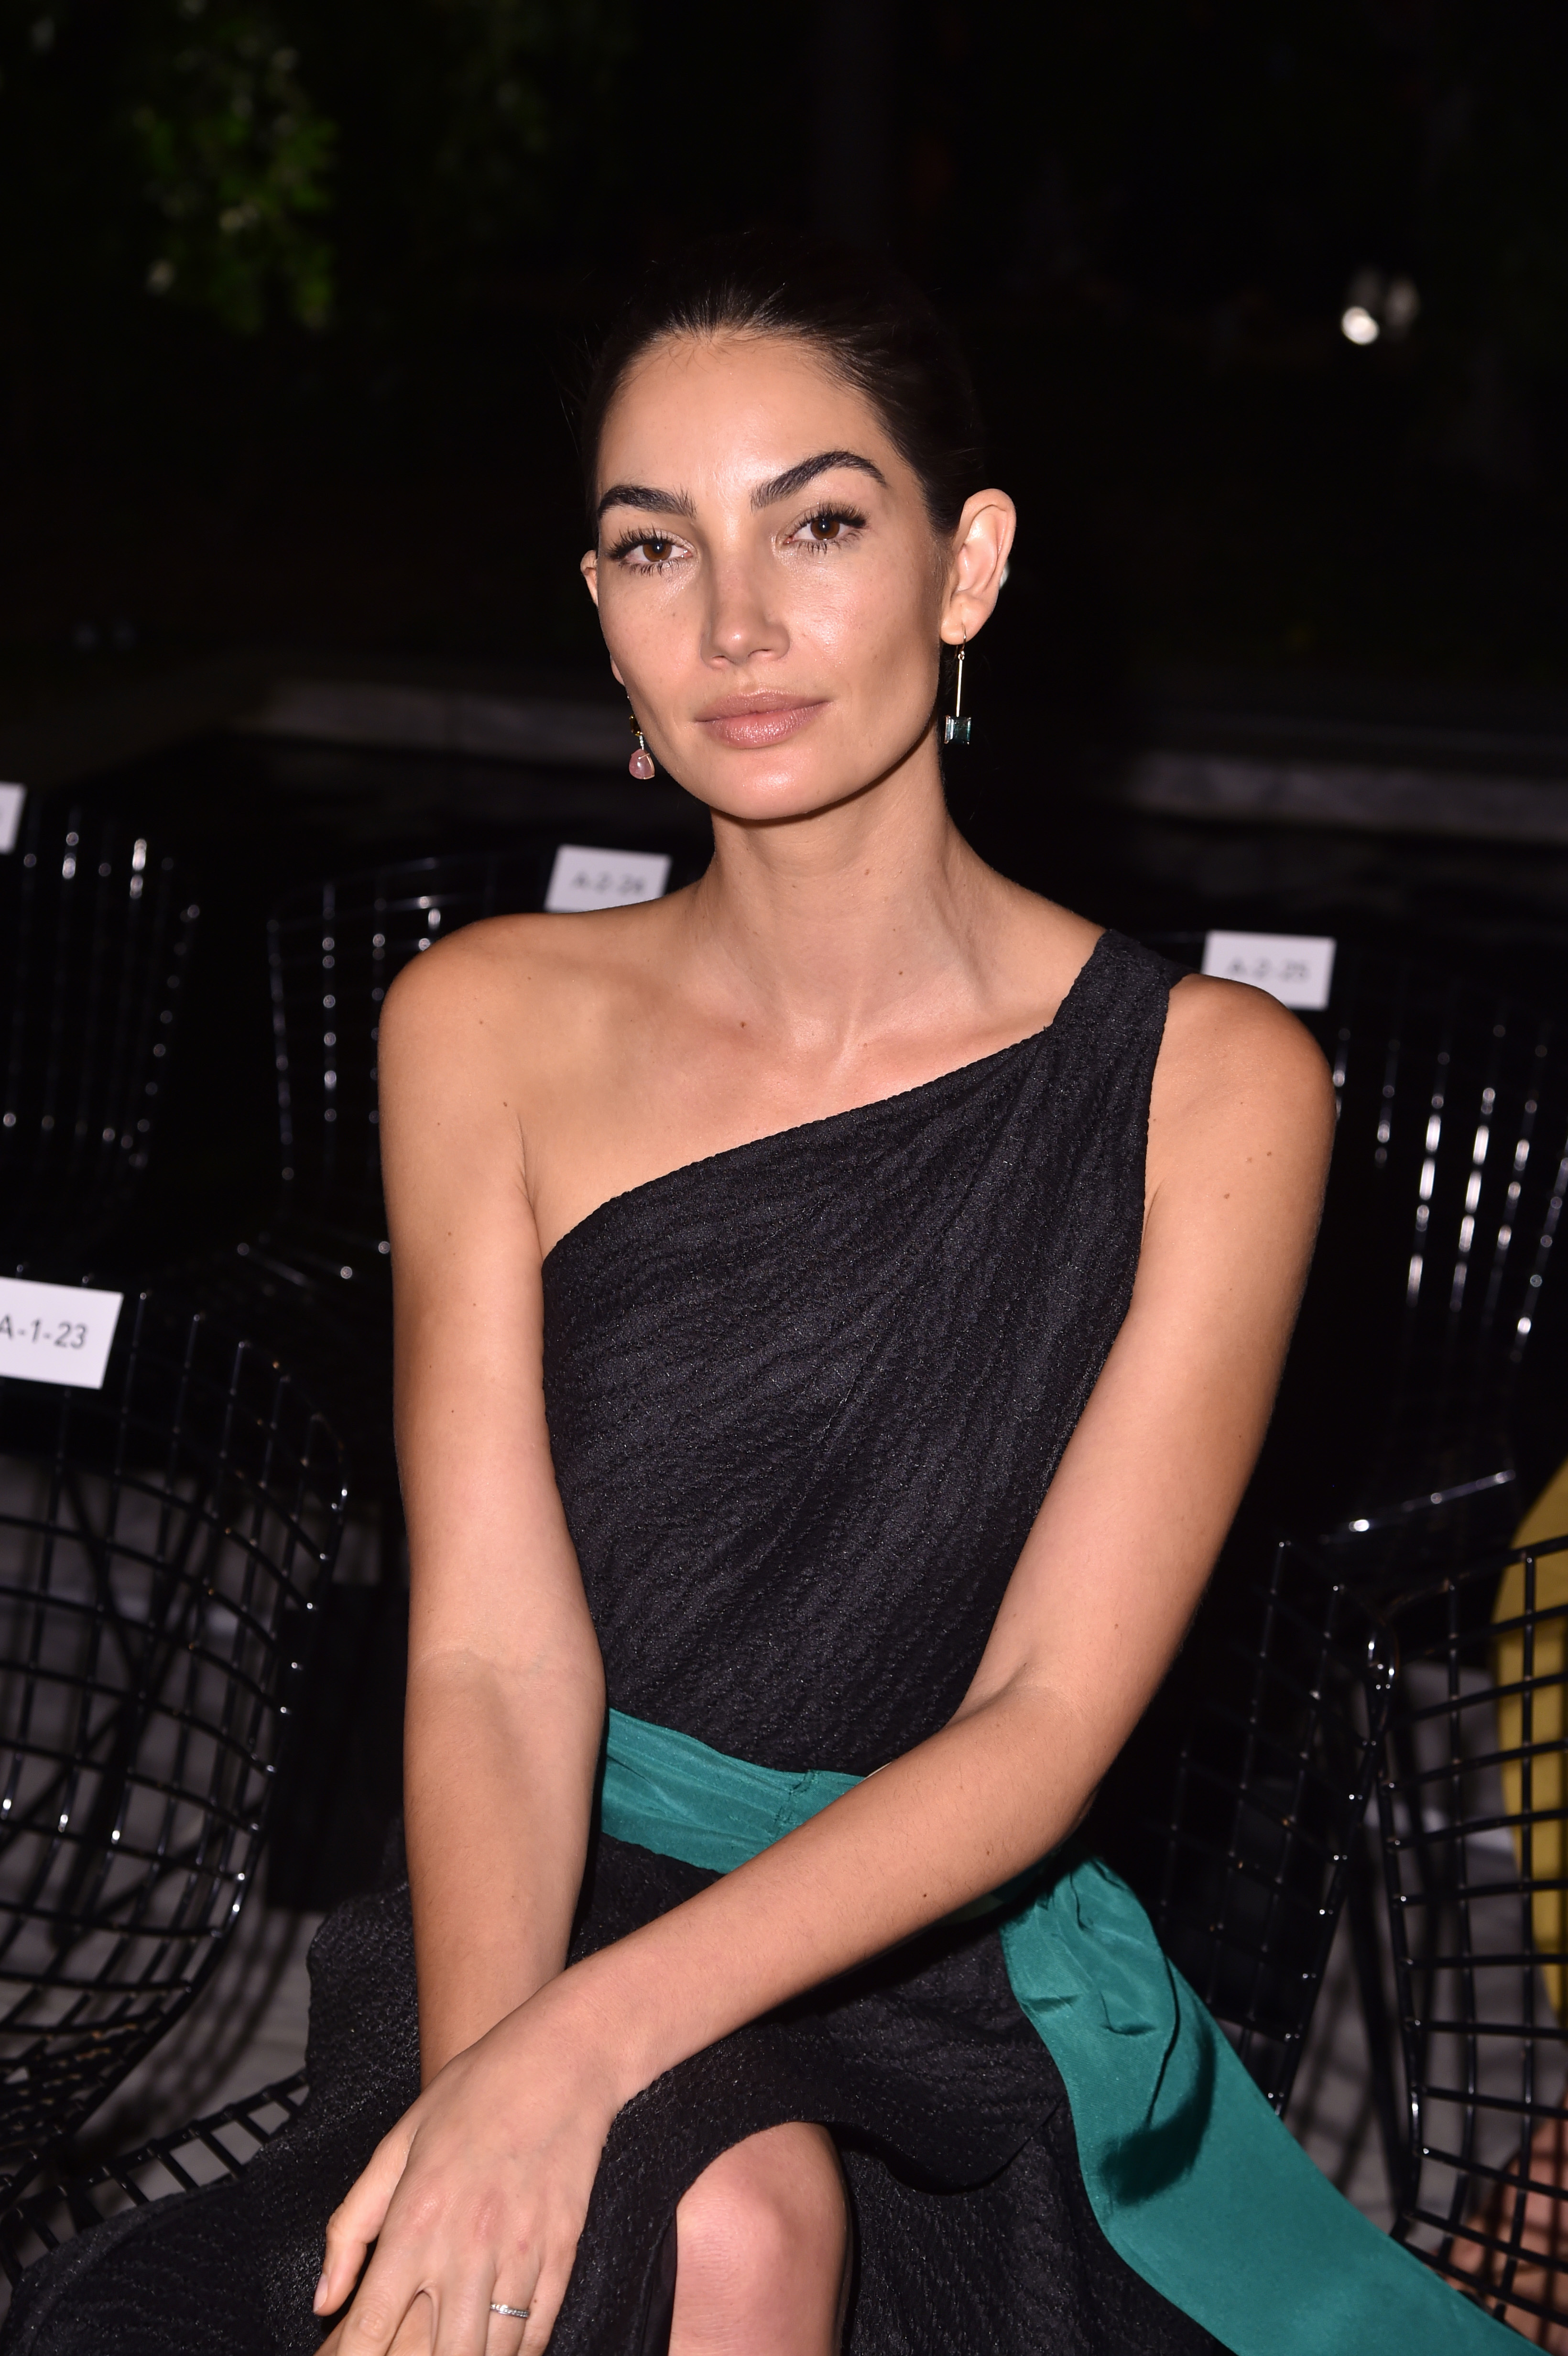 Lily Aldridge sits front row at the Carolina Herrera show during New York Fashion Week on Sept. 11, 2017.